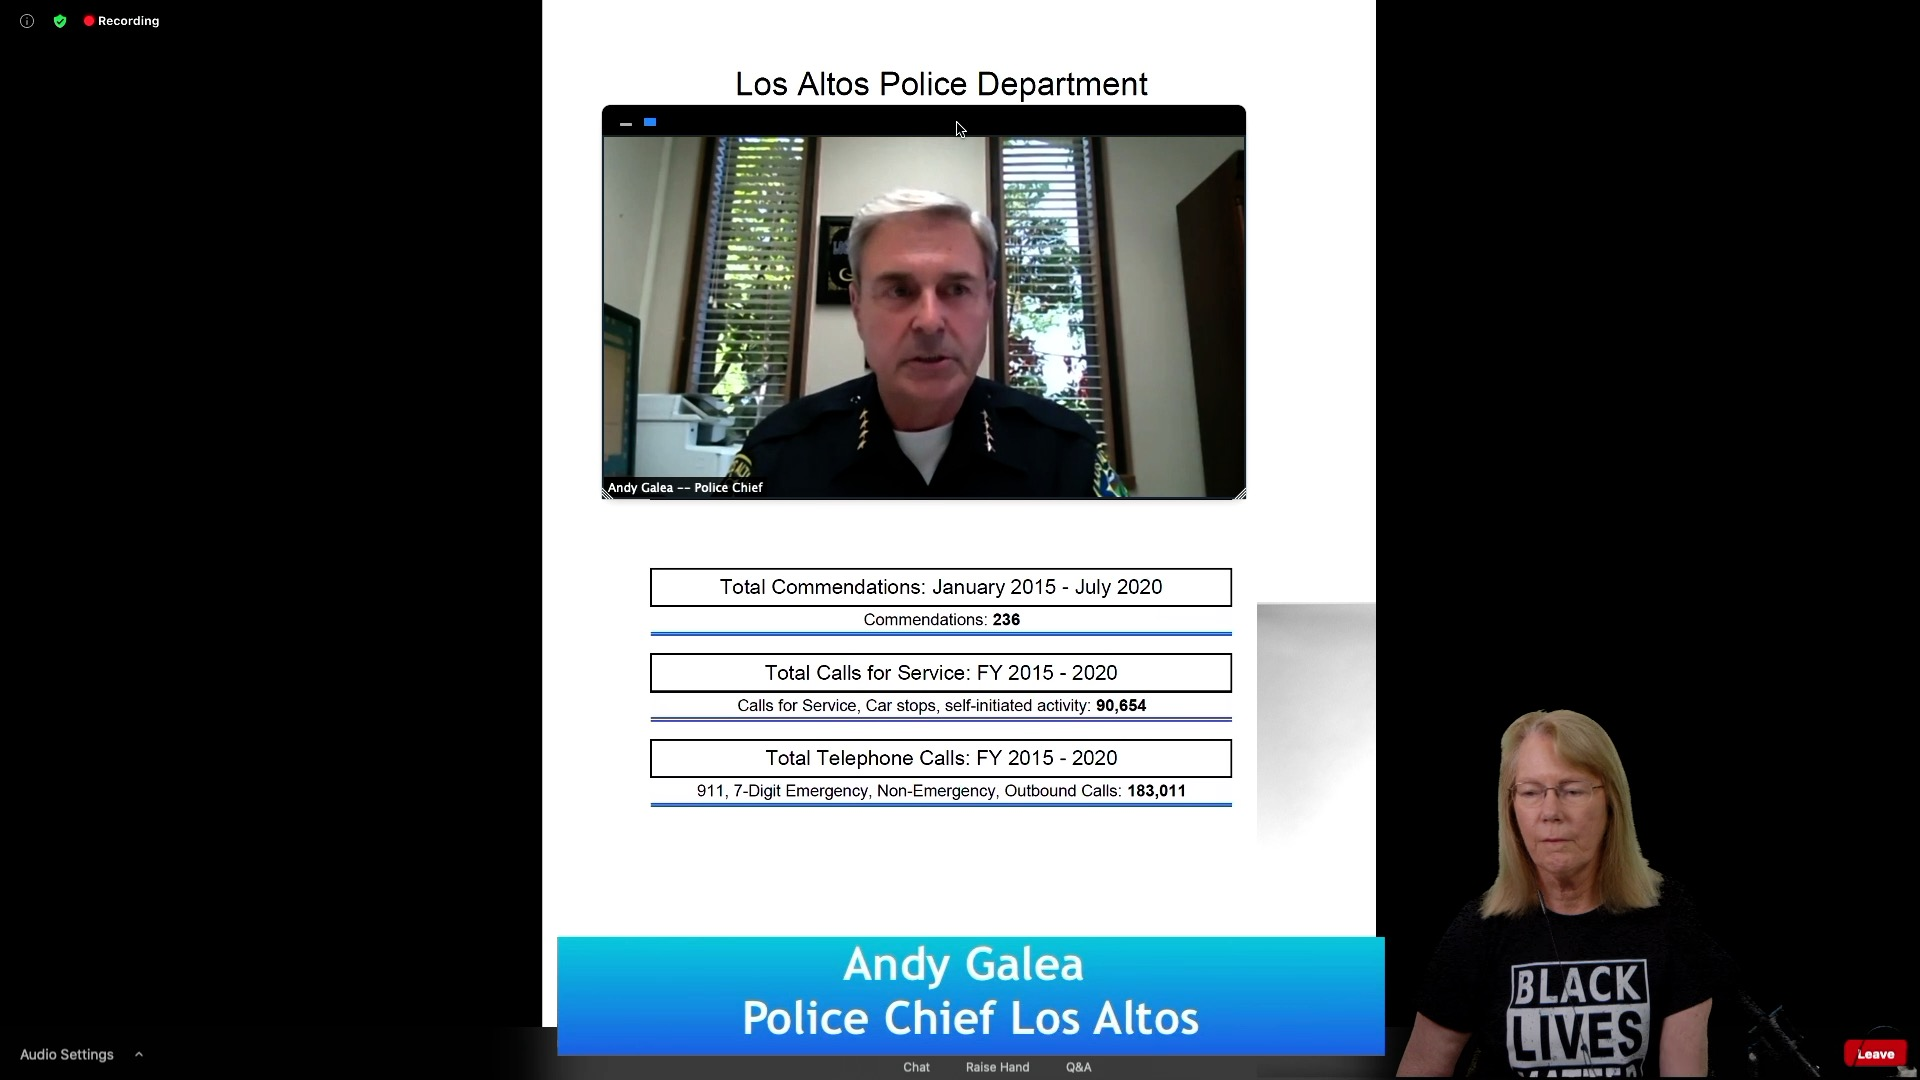 Los Altos Police Chief presents Officer Complaint info